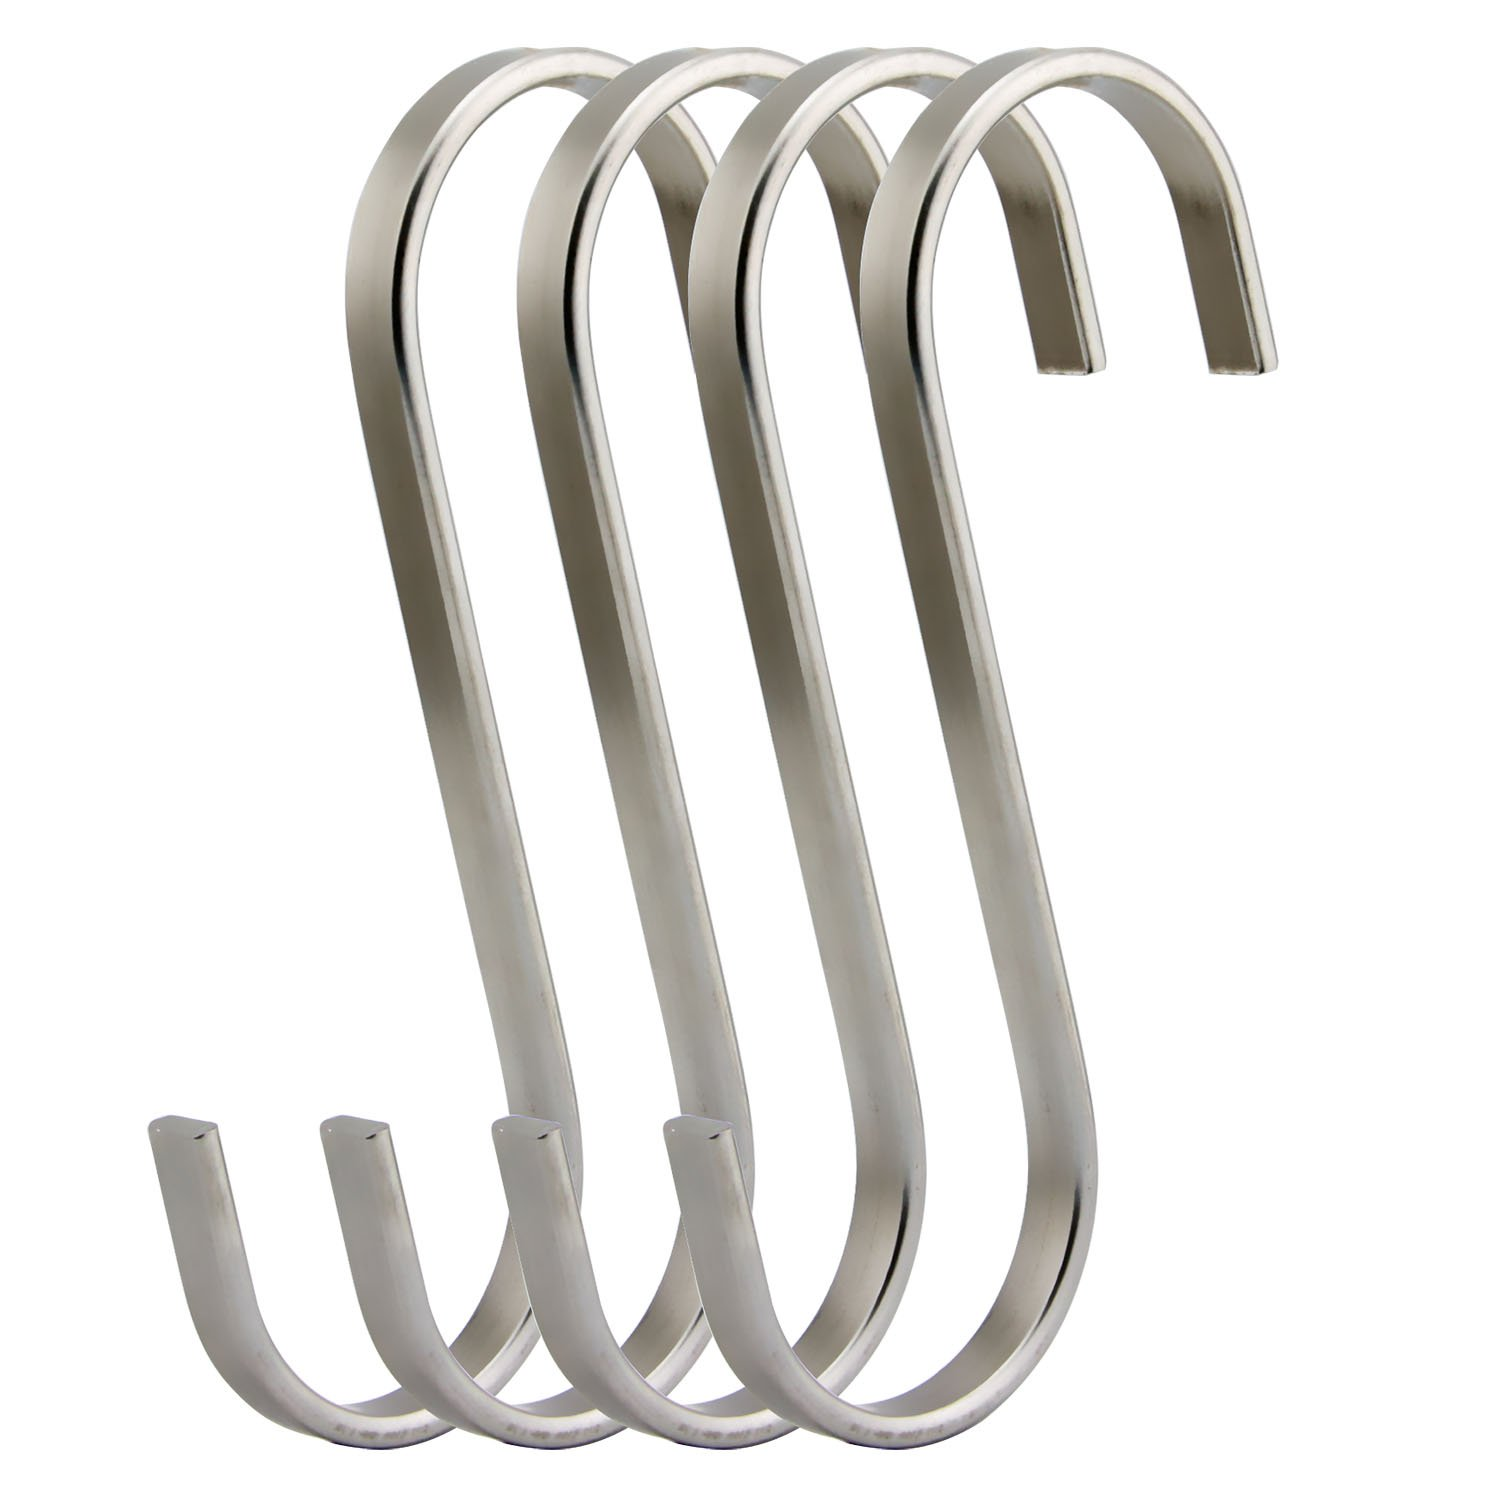 RuiLing Premium 4-Pack Size Extra Large Brushed Stainless Flat S Hooks Kitchen Pot Pan Hanger Clothes Storage Rack, XXL, Metal